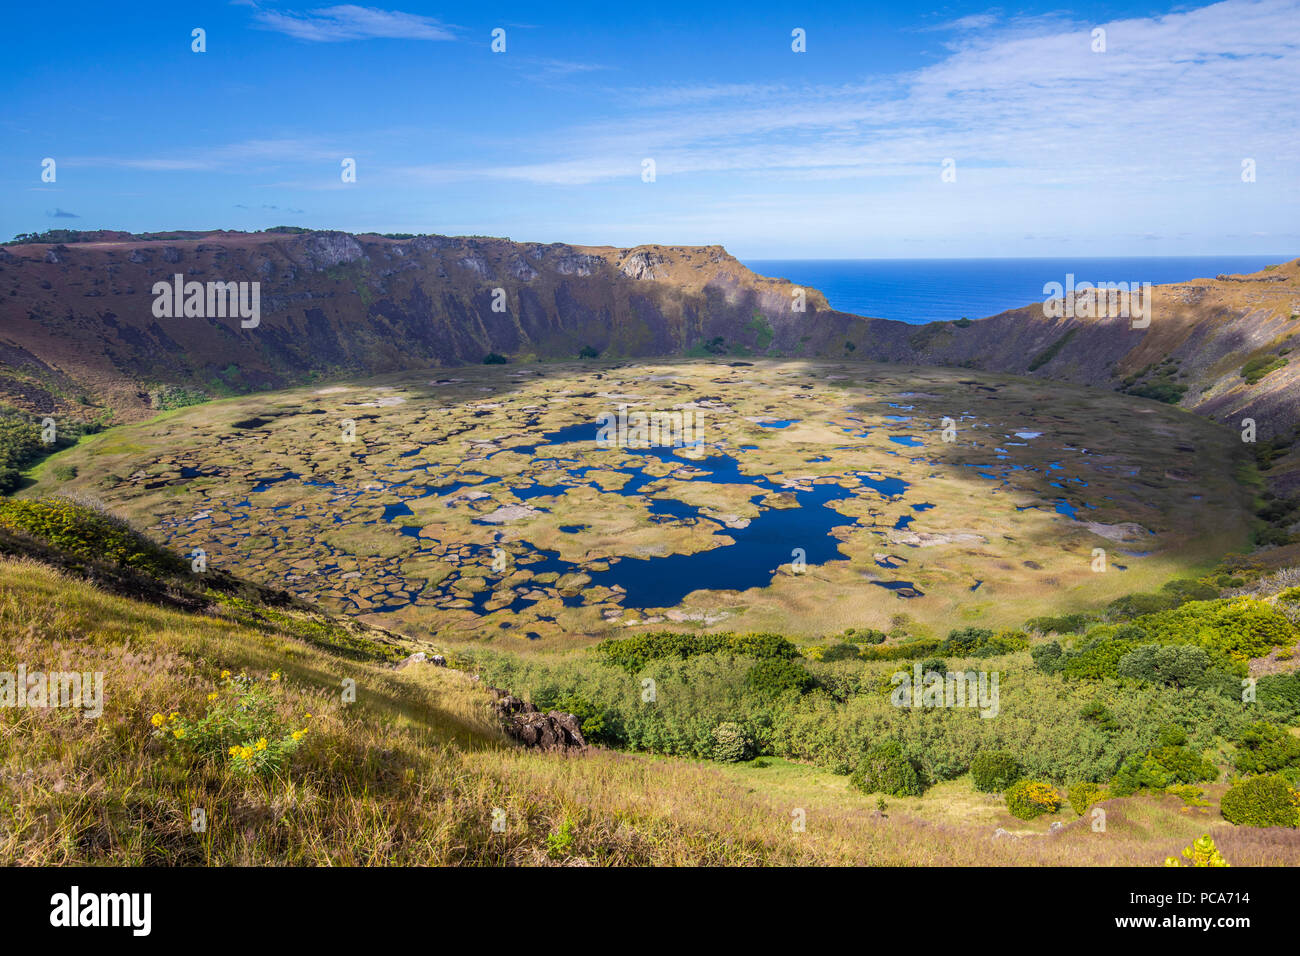 Amazing view over Rano Kau Volcano, maybe the most impressive landscape inside Easter Island. - Stock Image